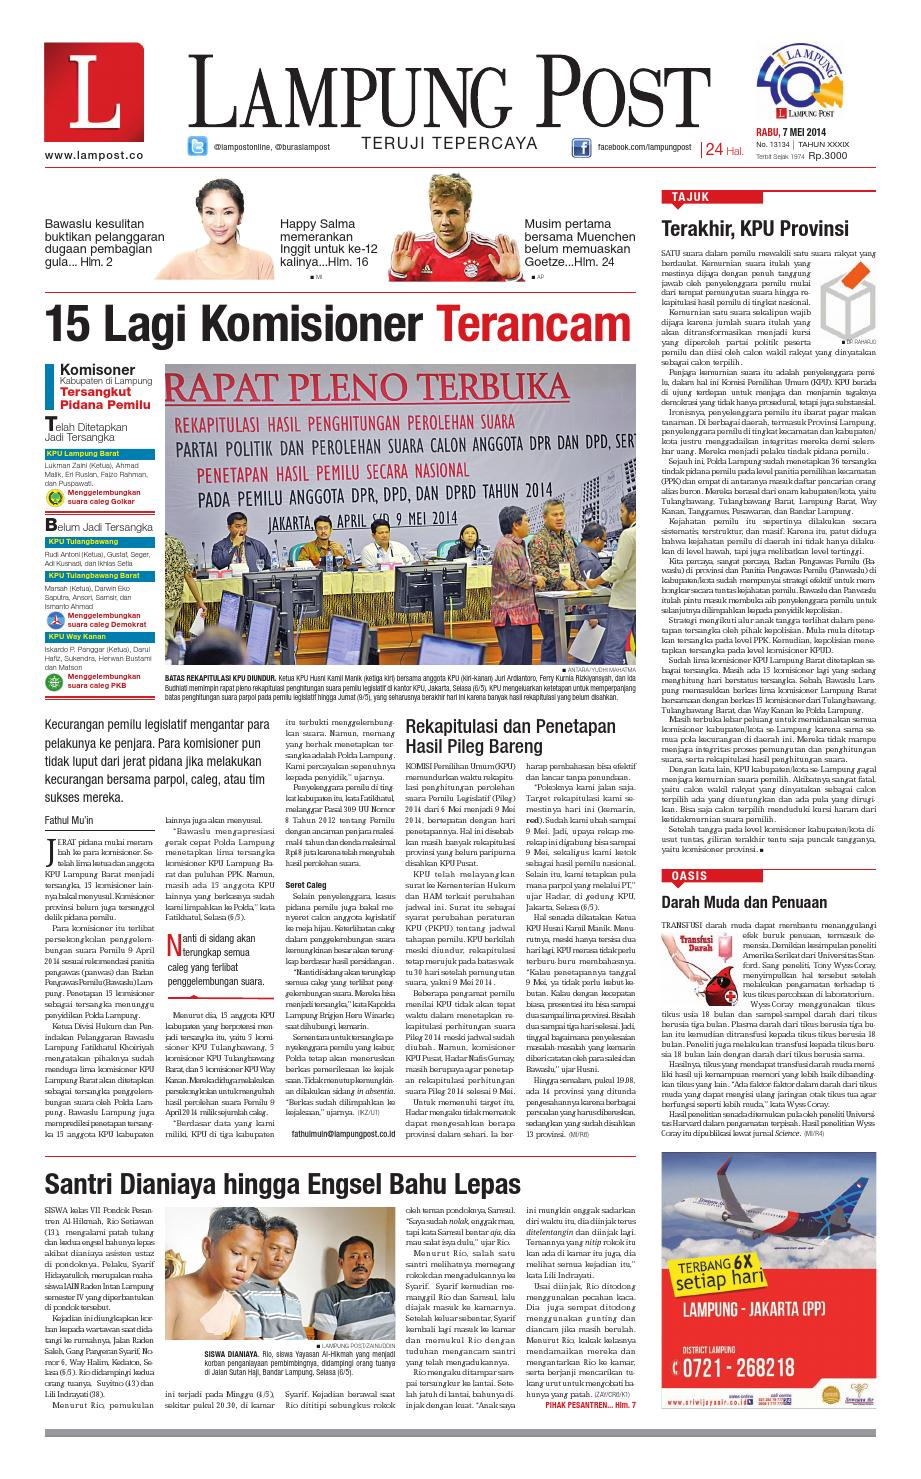 lampung post rabu, 7 mei 2014 by lampung post issuulampung post rabu, 7 mei 2014 by lampung post issuu